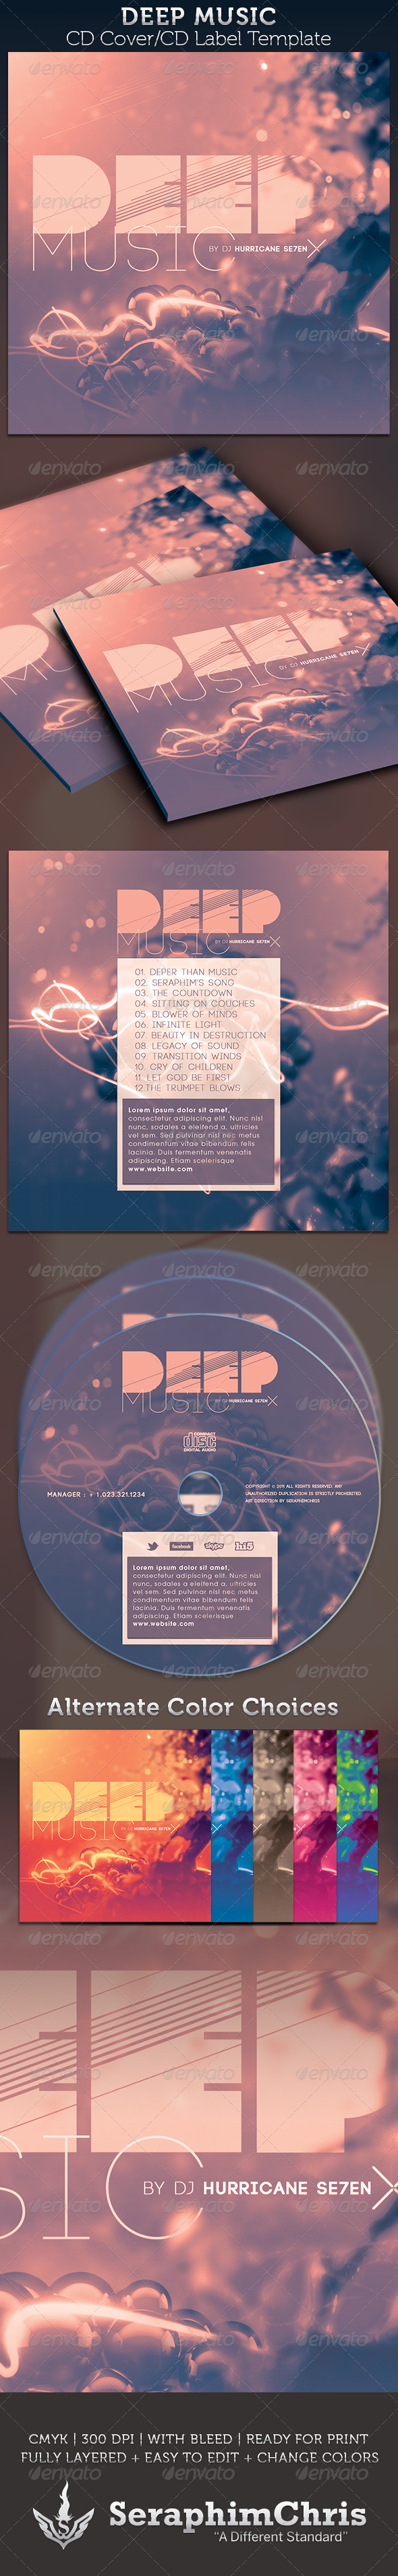 Deep Music: CD Cover Artwork Template - CD & DVD Artwork Print Templates